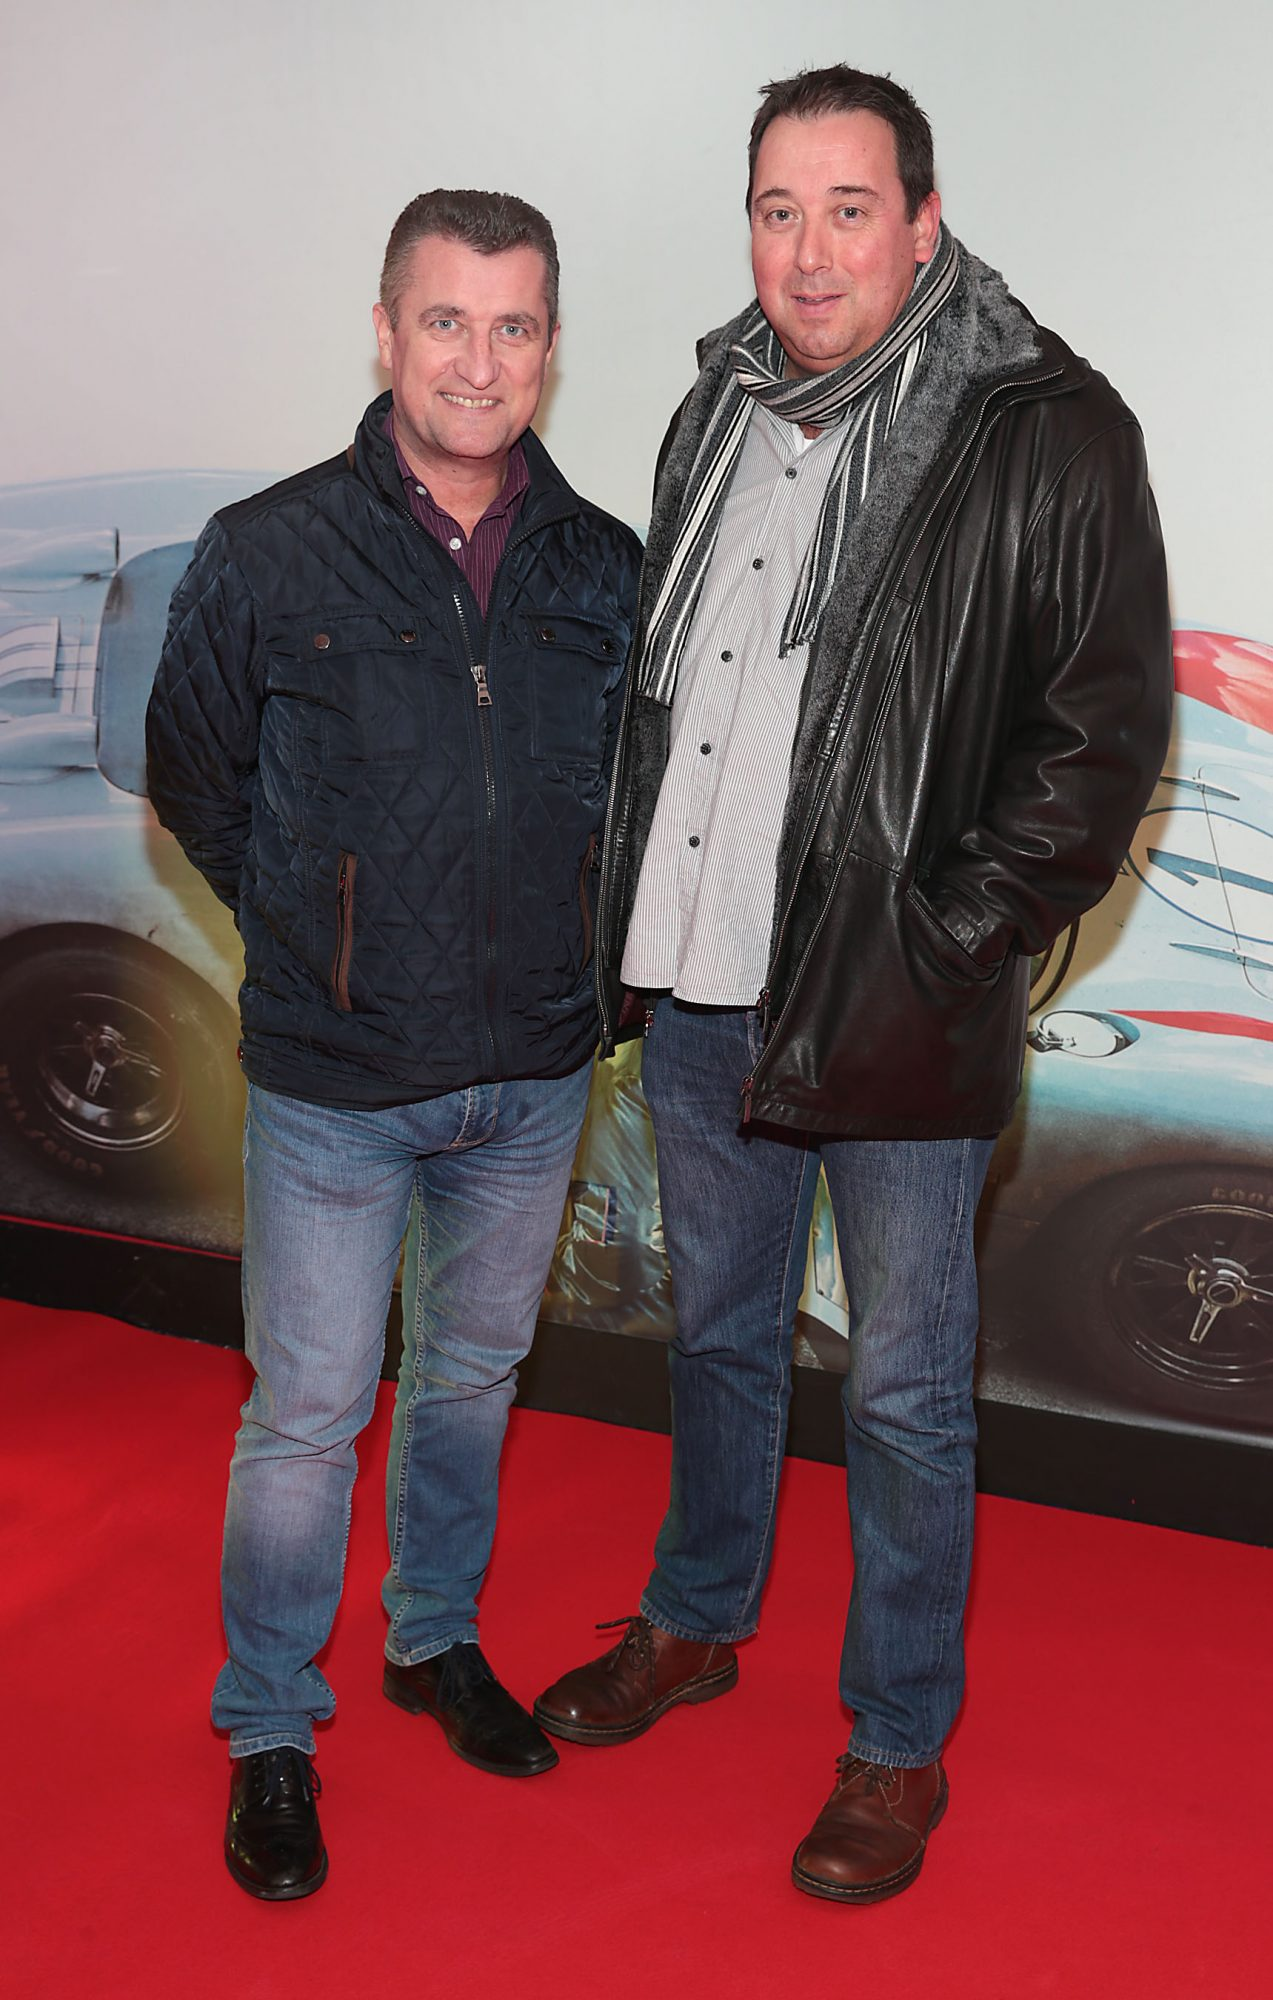 Alan Haskins and Val Fitzsimons pictured at the special preview screening of Le Mans '66 at Cineworld, Dublin. Photo: Brian McEvoy.